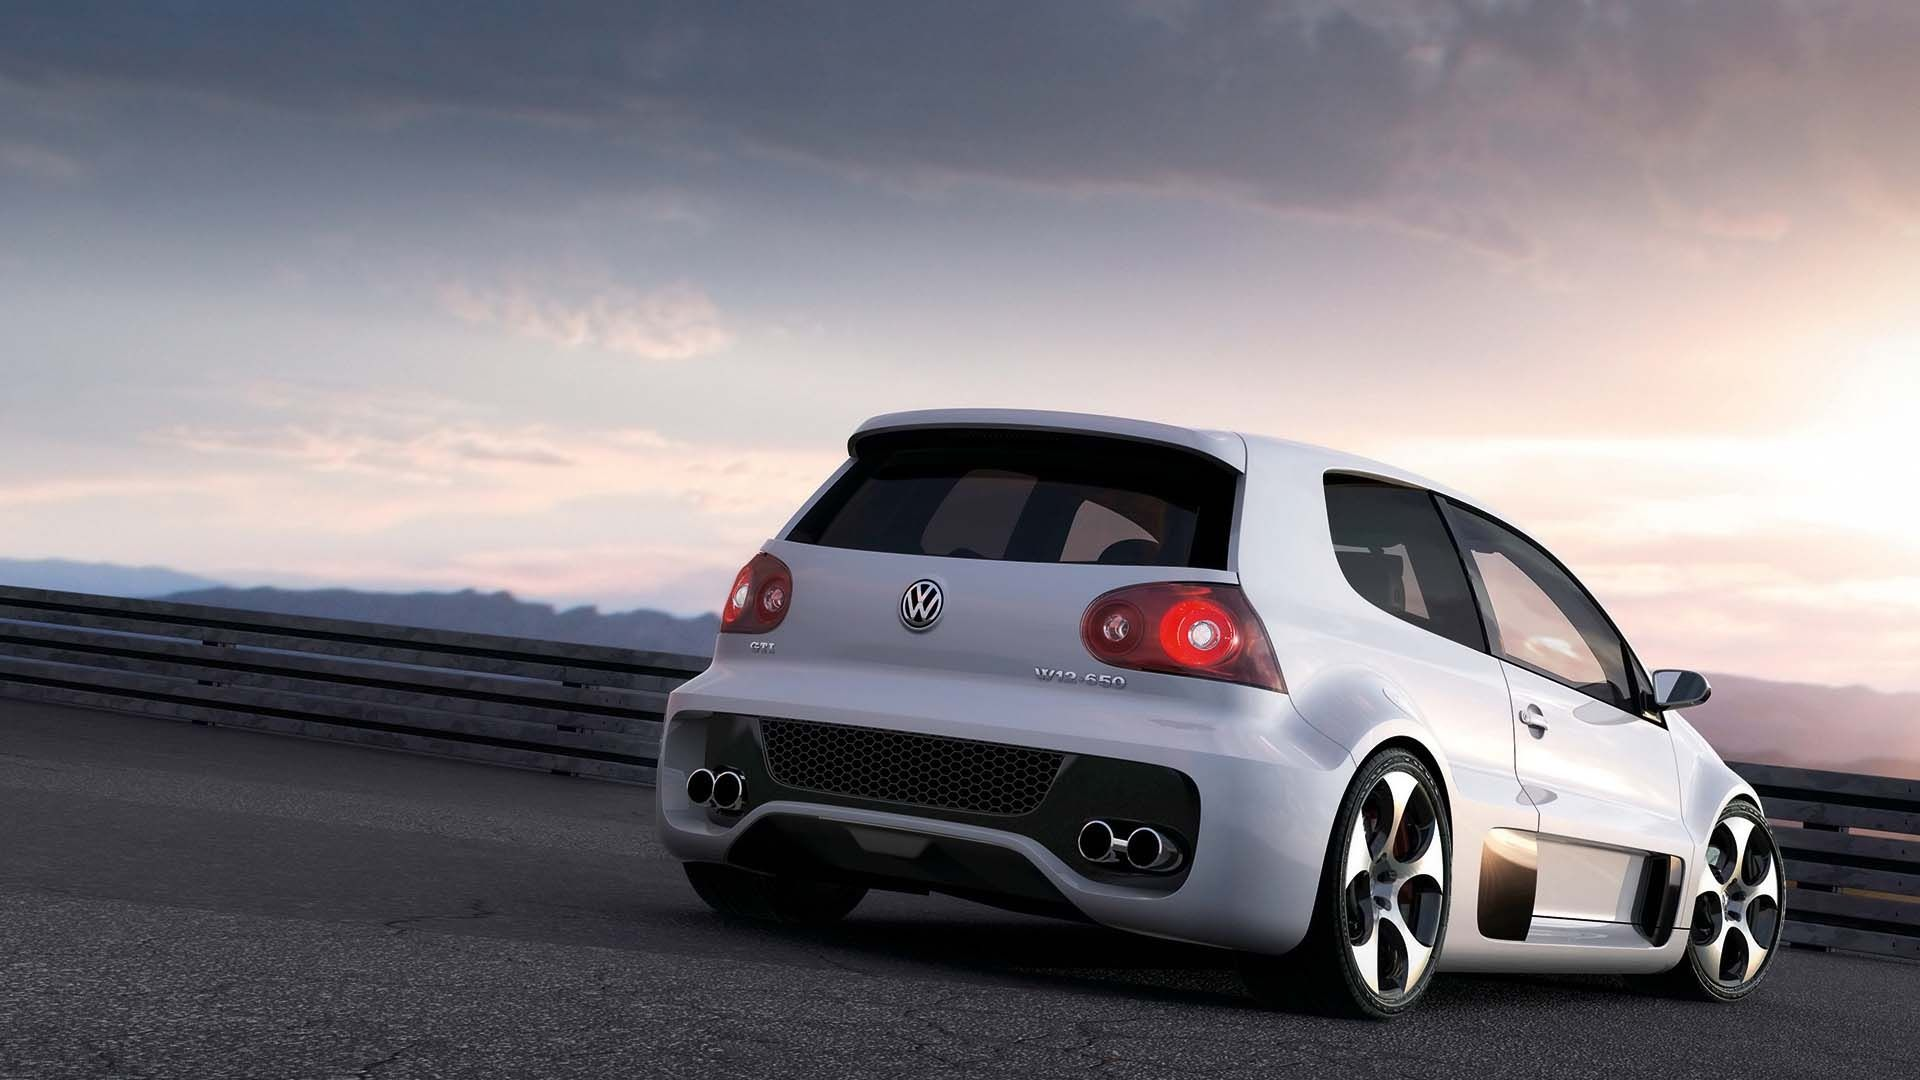 Attirant Amazing Volkswagen Golf GTI Back Side Picture Wallpaper